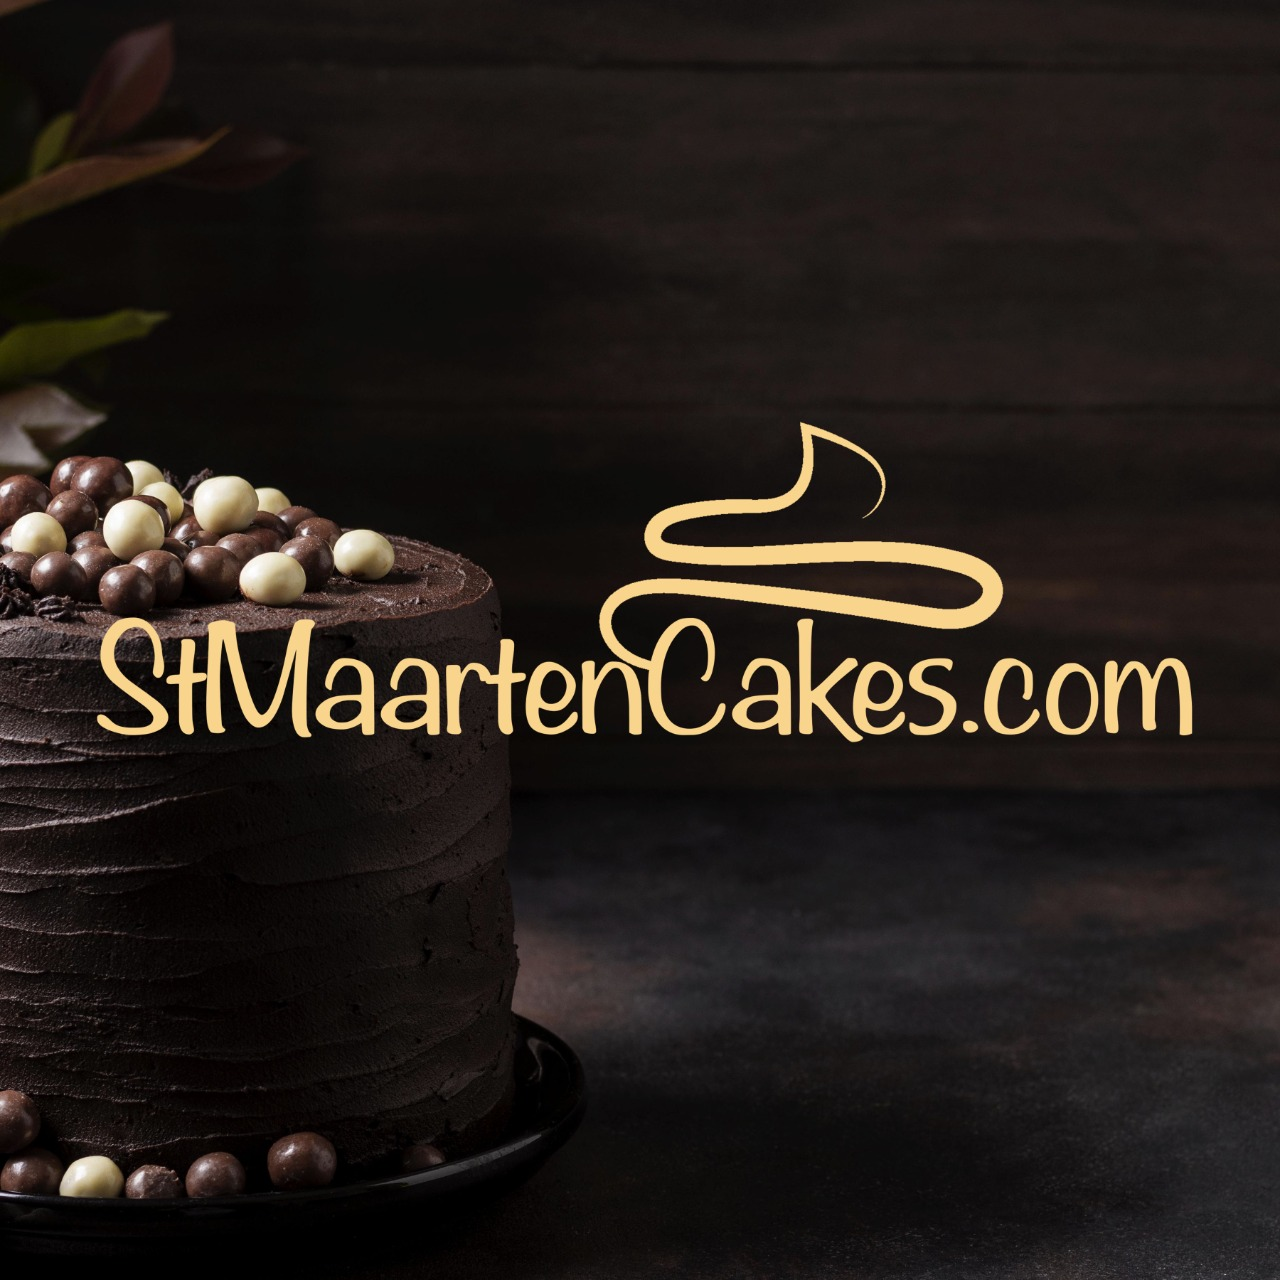 For all your cakes